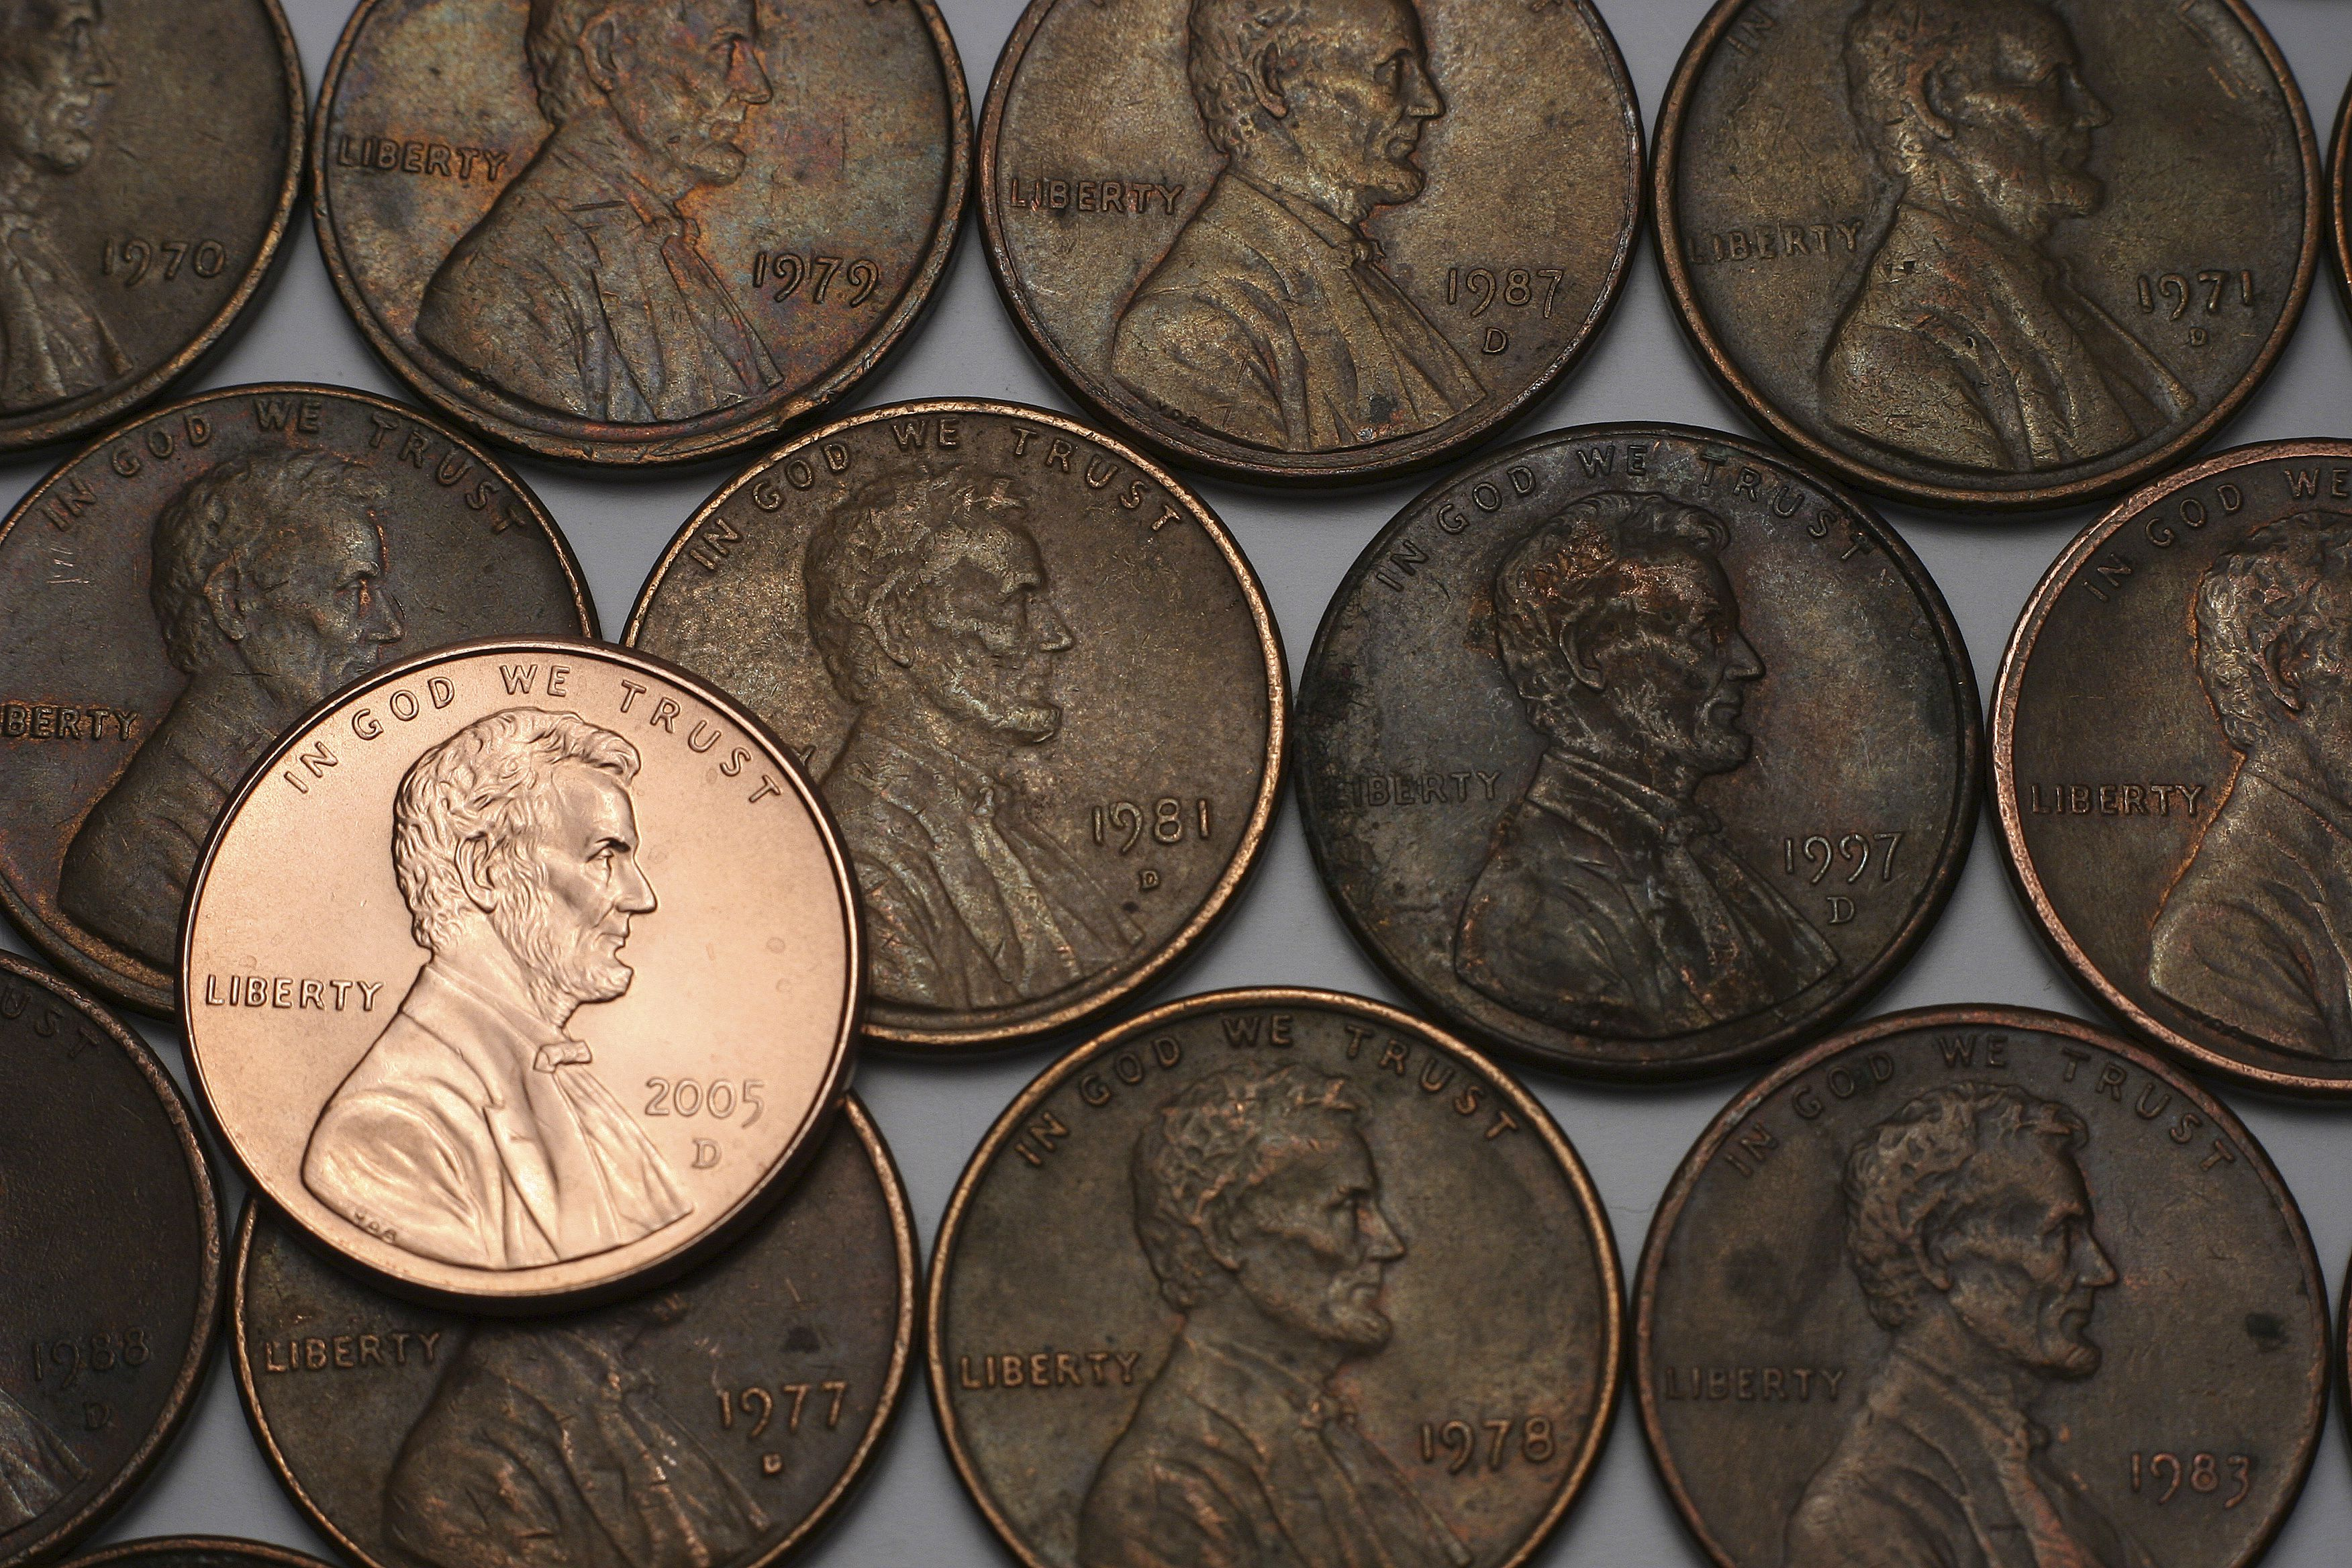 how to clean coins safely without damaging them